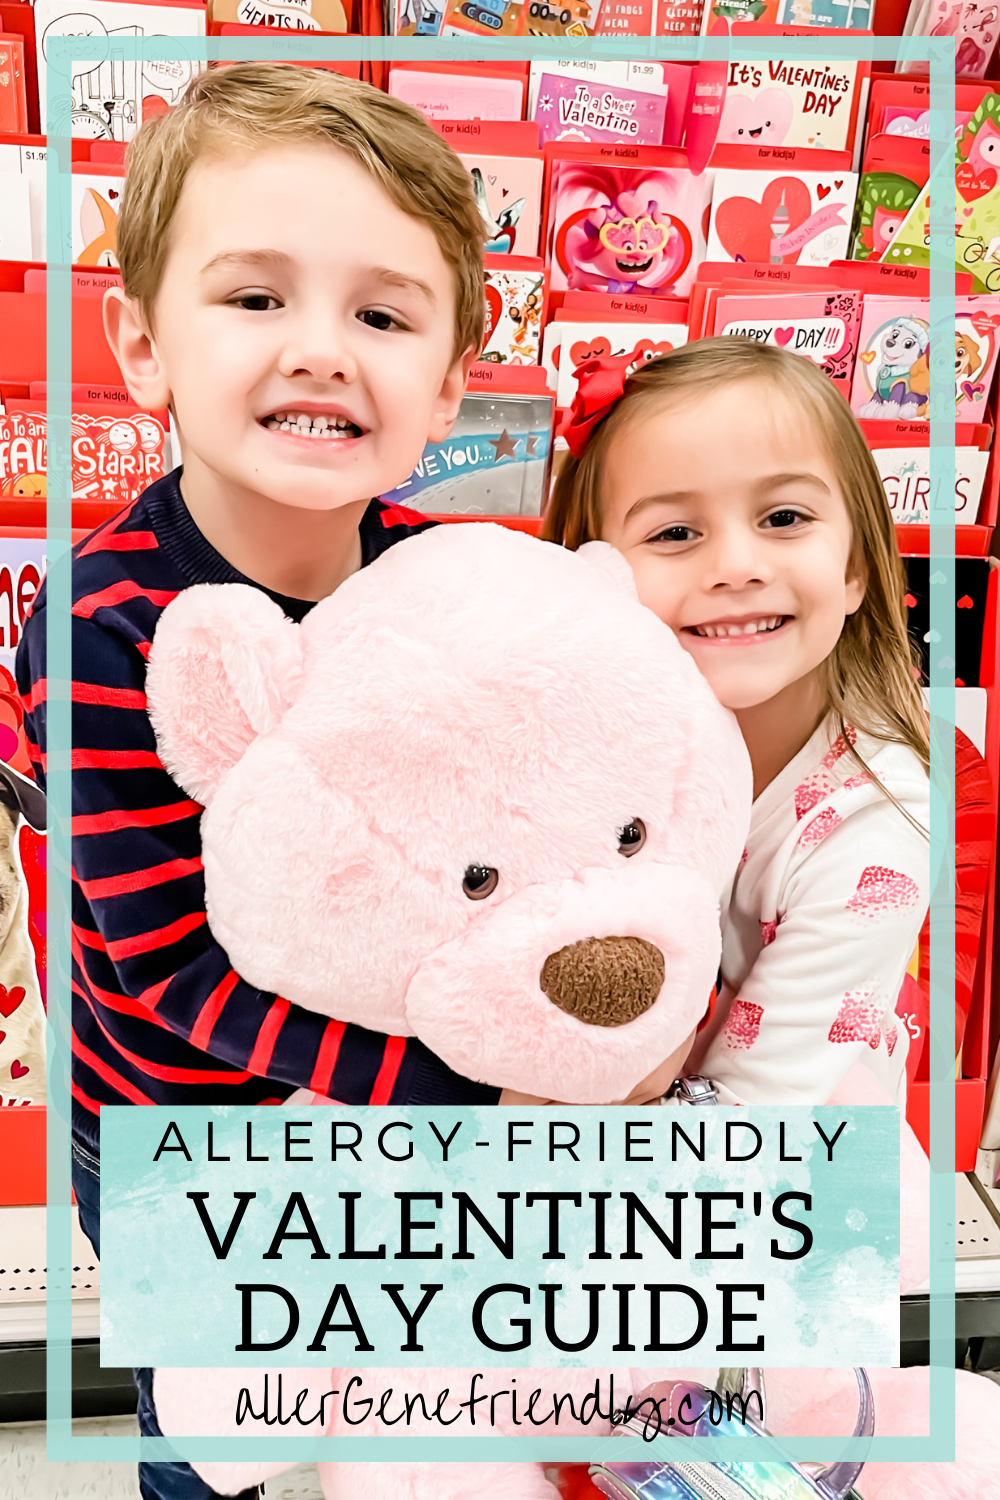 allergy-friendly valentines day treat guide